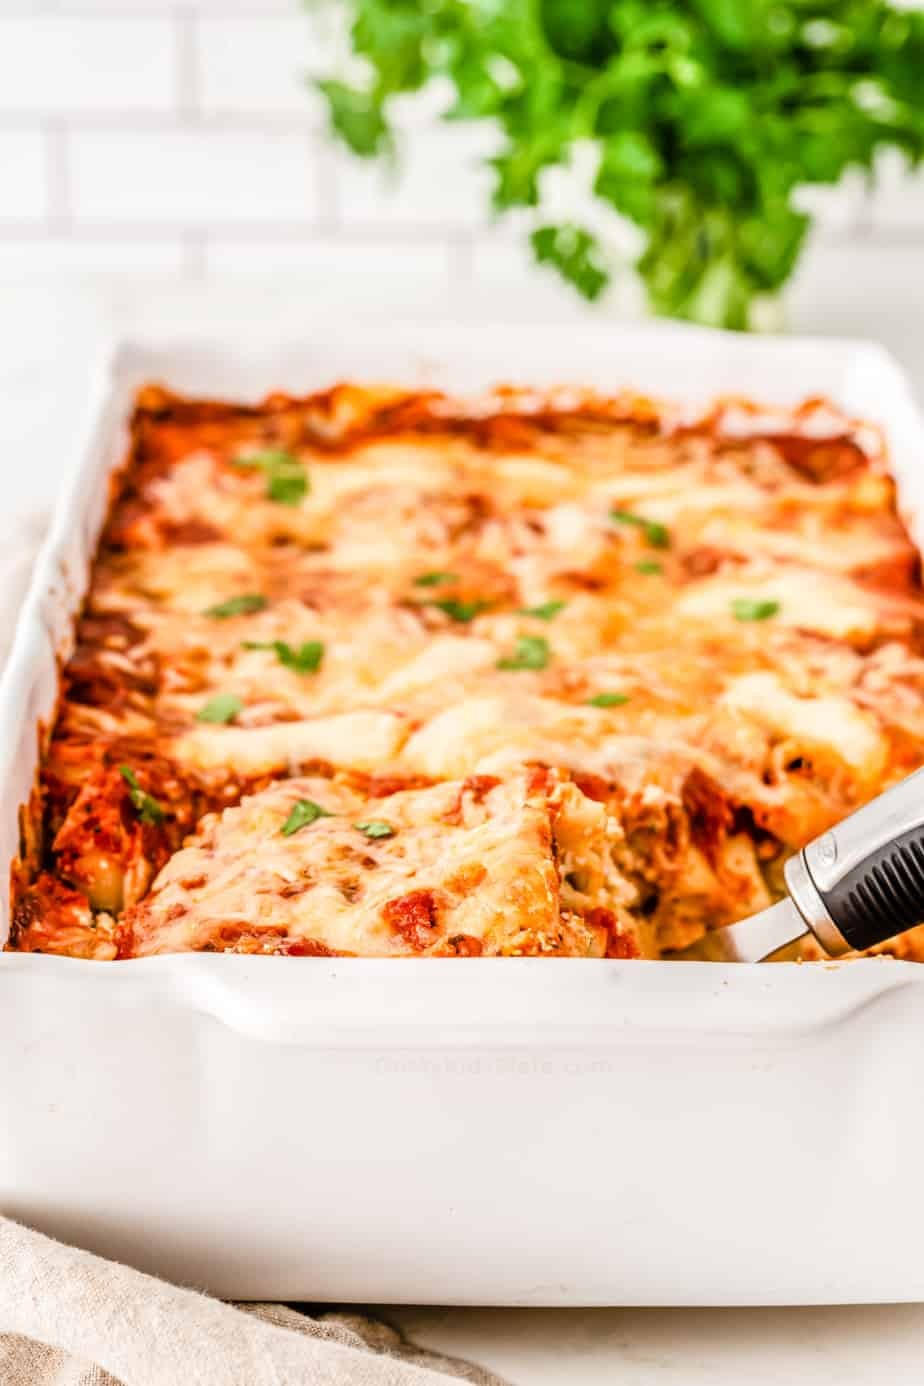 Baked ziti covered in a melted cheese in a pan with a spoon beginning to lift out a serving.